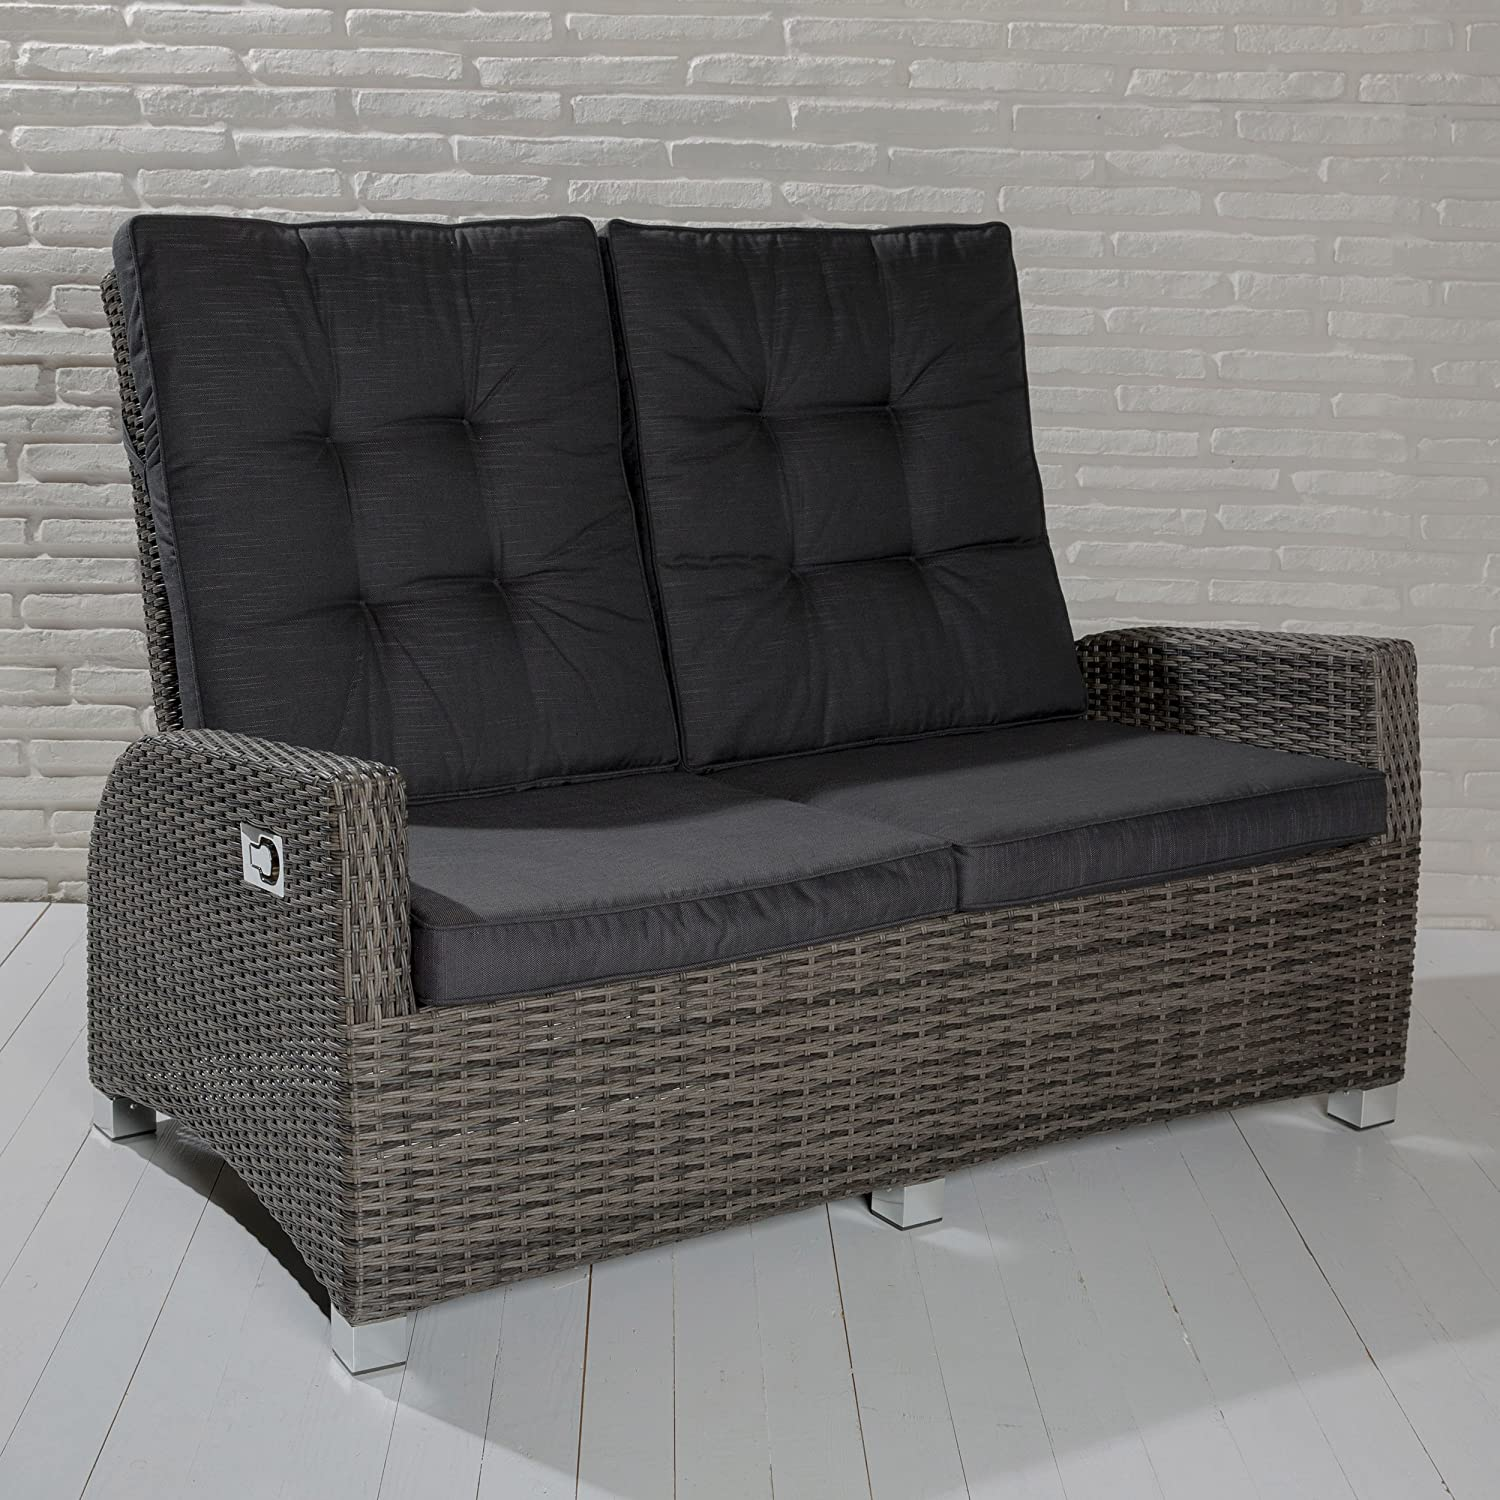 rattan 2 sitzer ro68 hitoiro. Black Bedroom Furniture Sets. Home Design Ideas